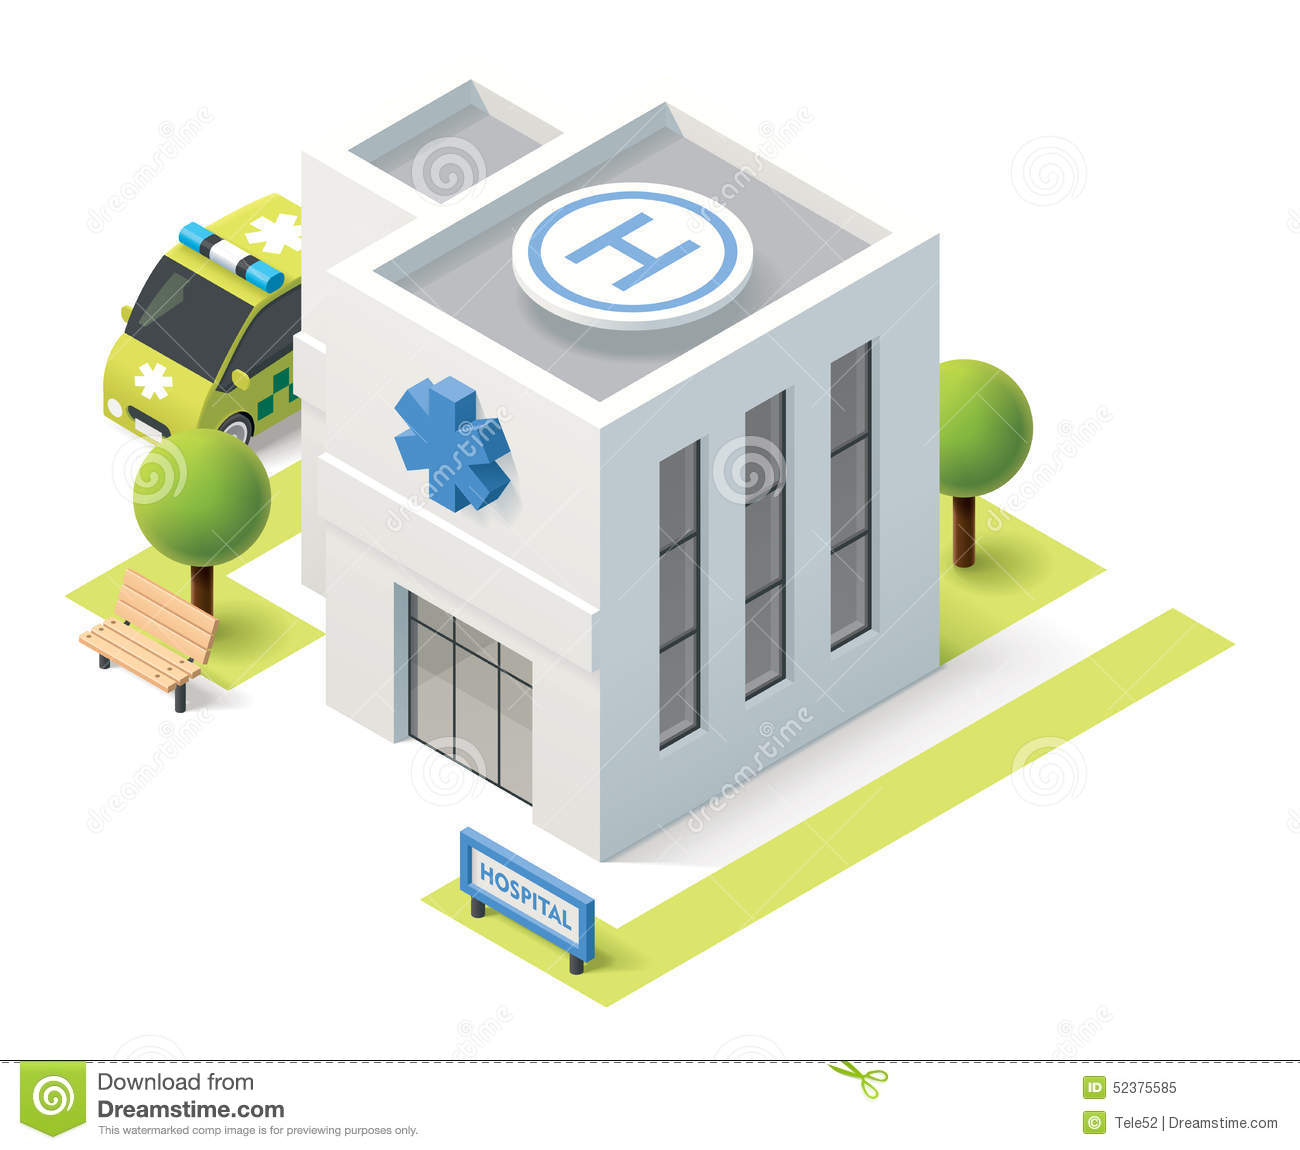 Occupational Therapy Clinic Floor Plan as well Stock Photography Ct Scan Room Hospital Interior Empty Image35912142 additionally Our PET CT Services furthermore 12x32 Cabin Interior Design further Signage Floor Plan. on imaging center floor plans